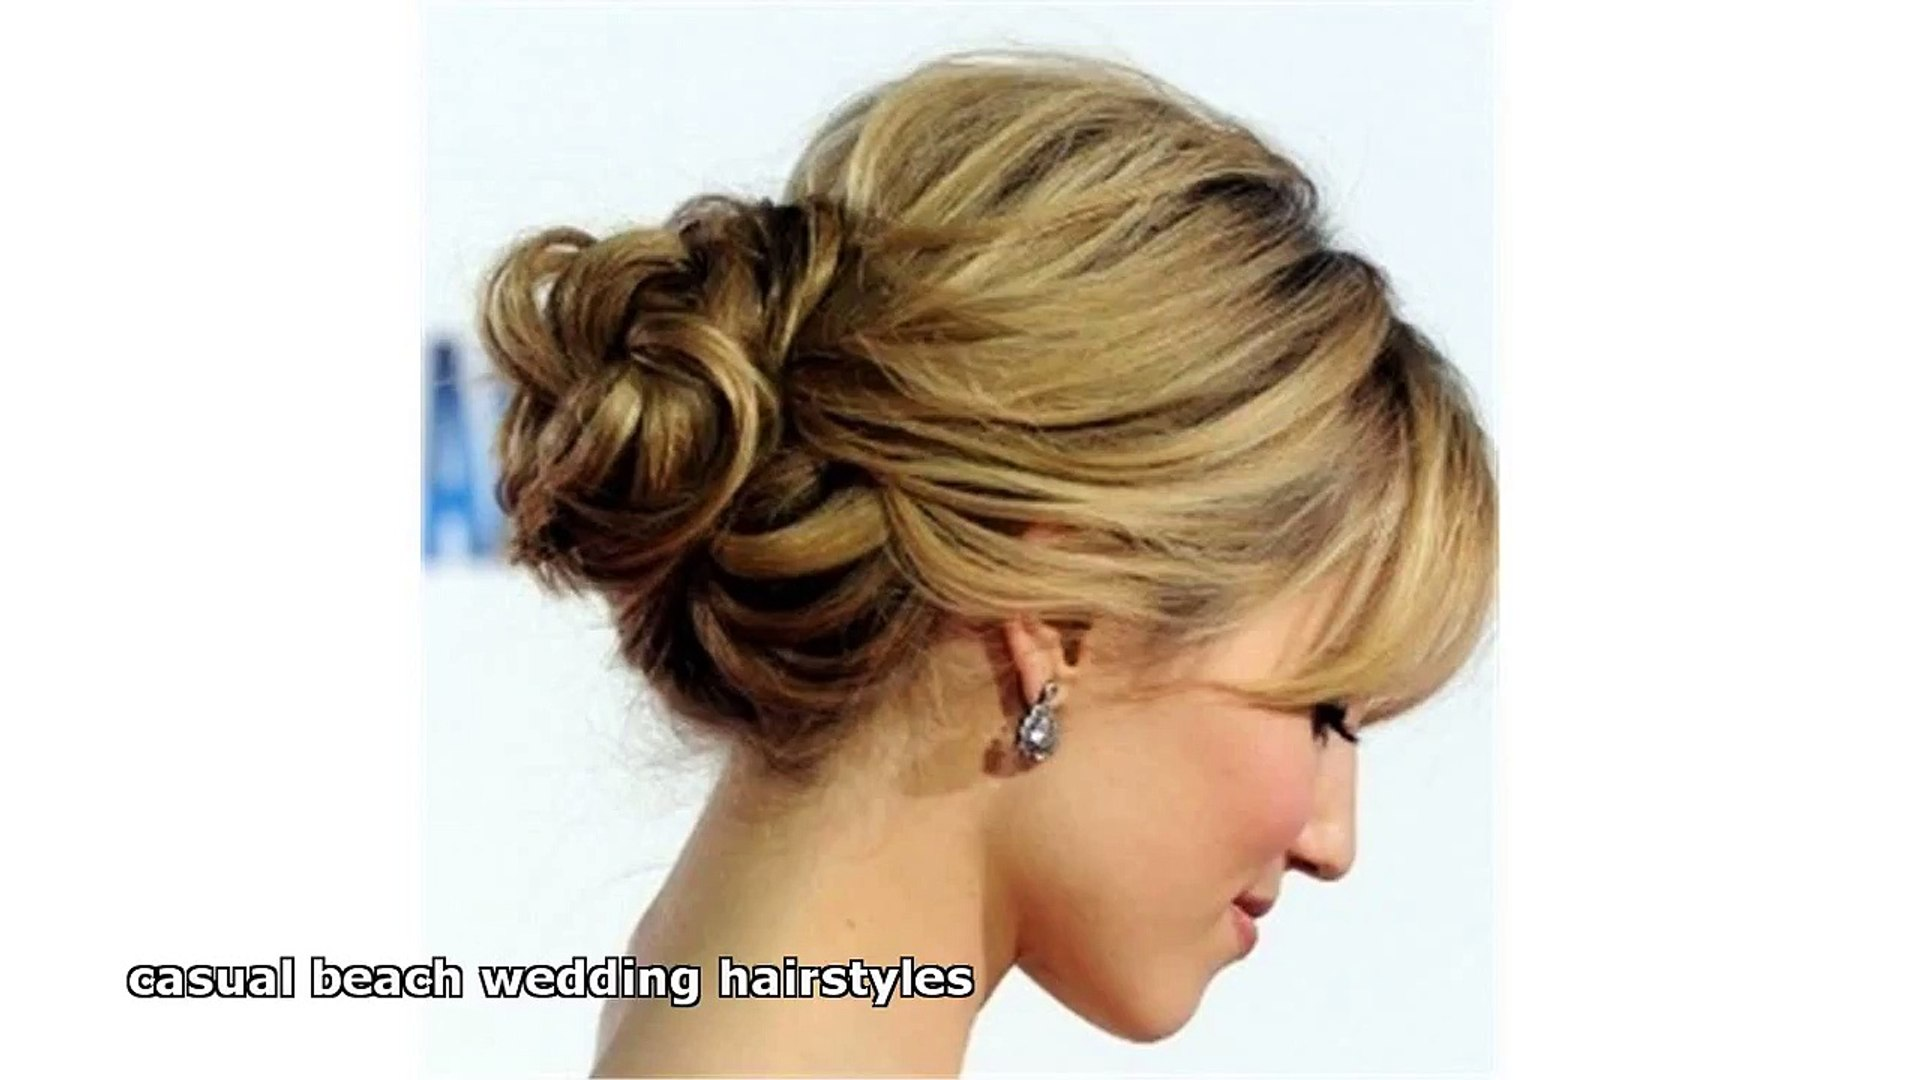 casual beach wedding hairstyles